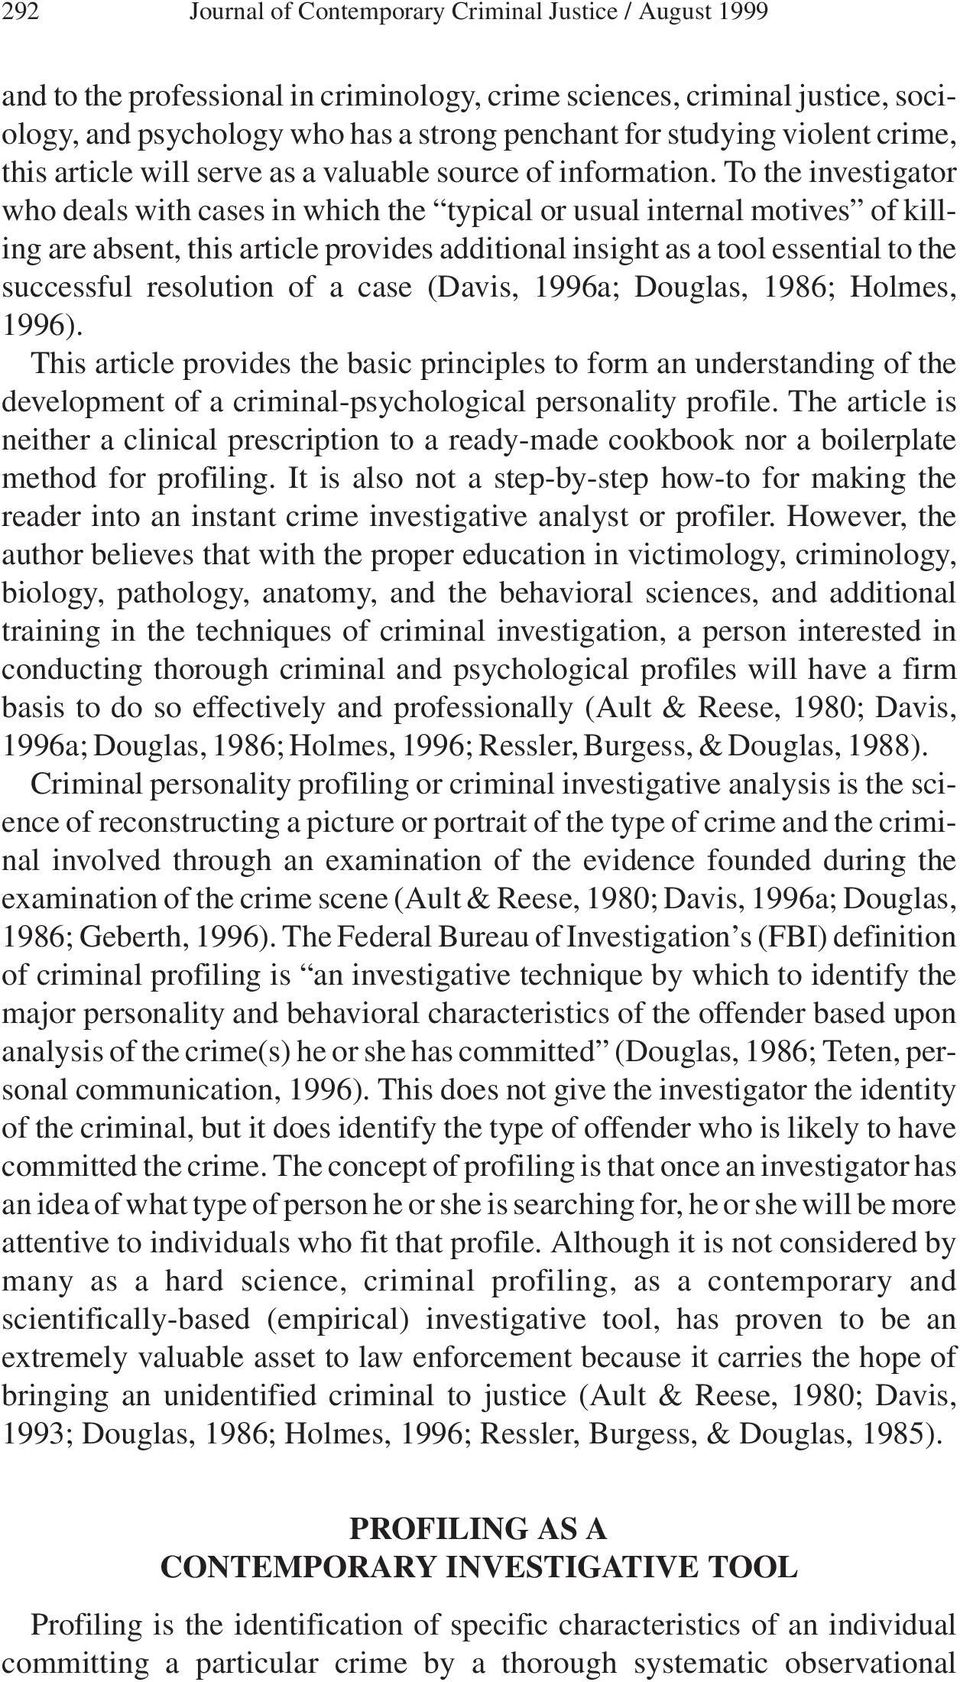 Criminal Personality Profiling and Crime Scene Assessment  A